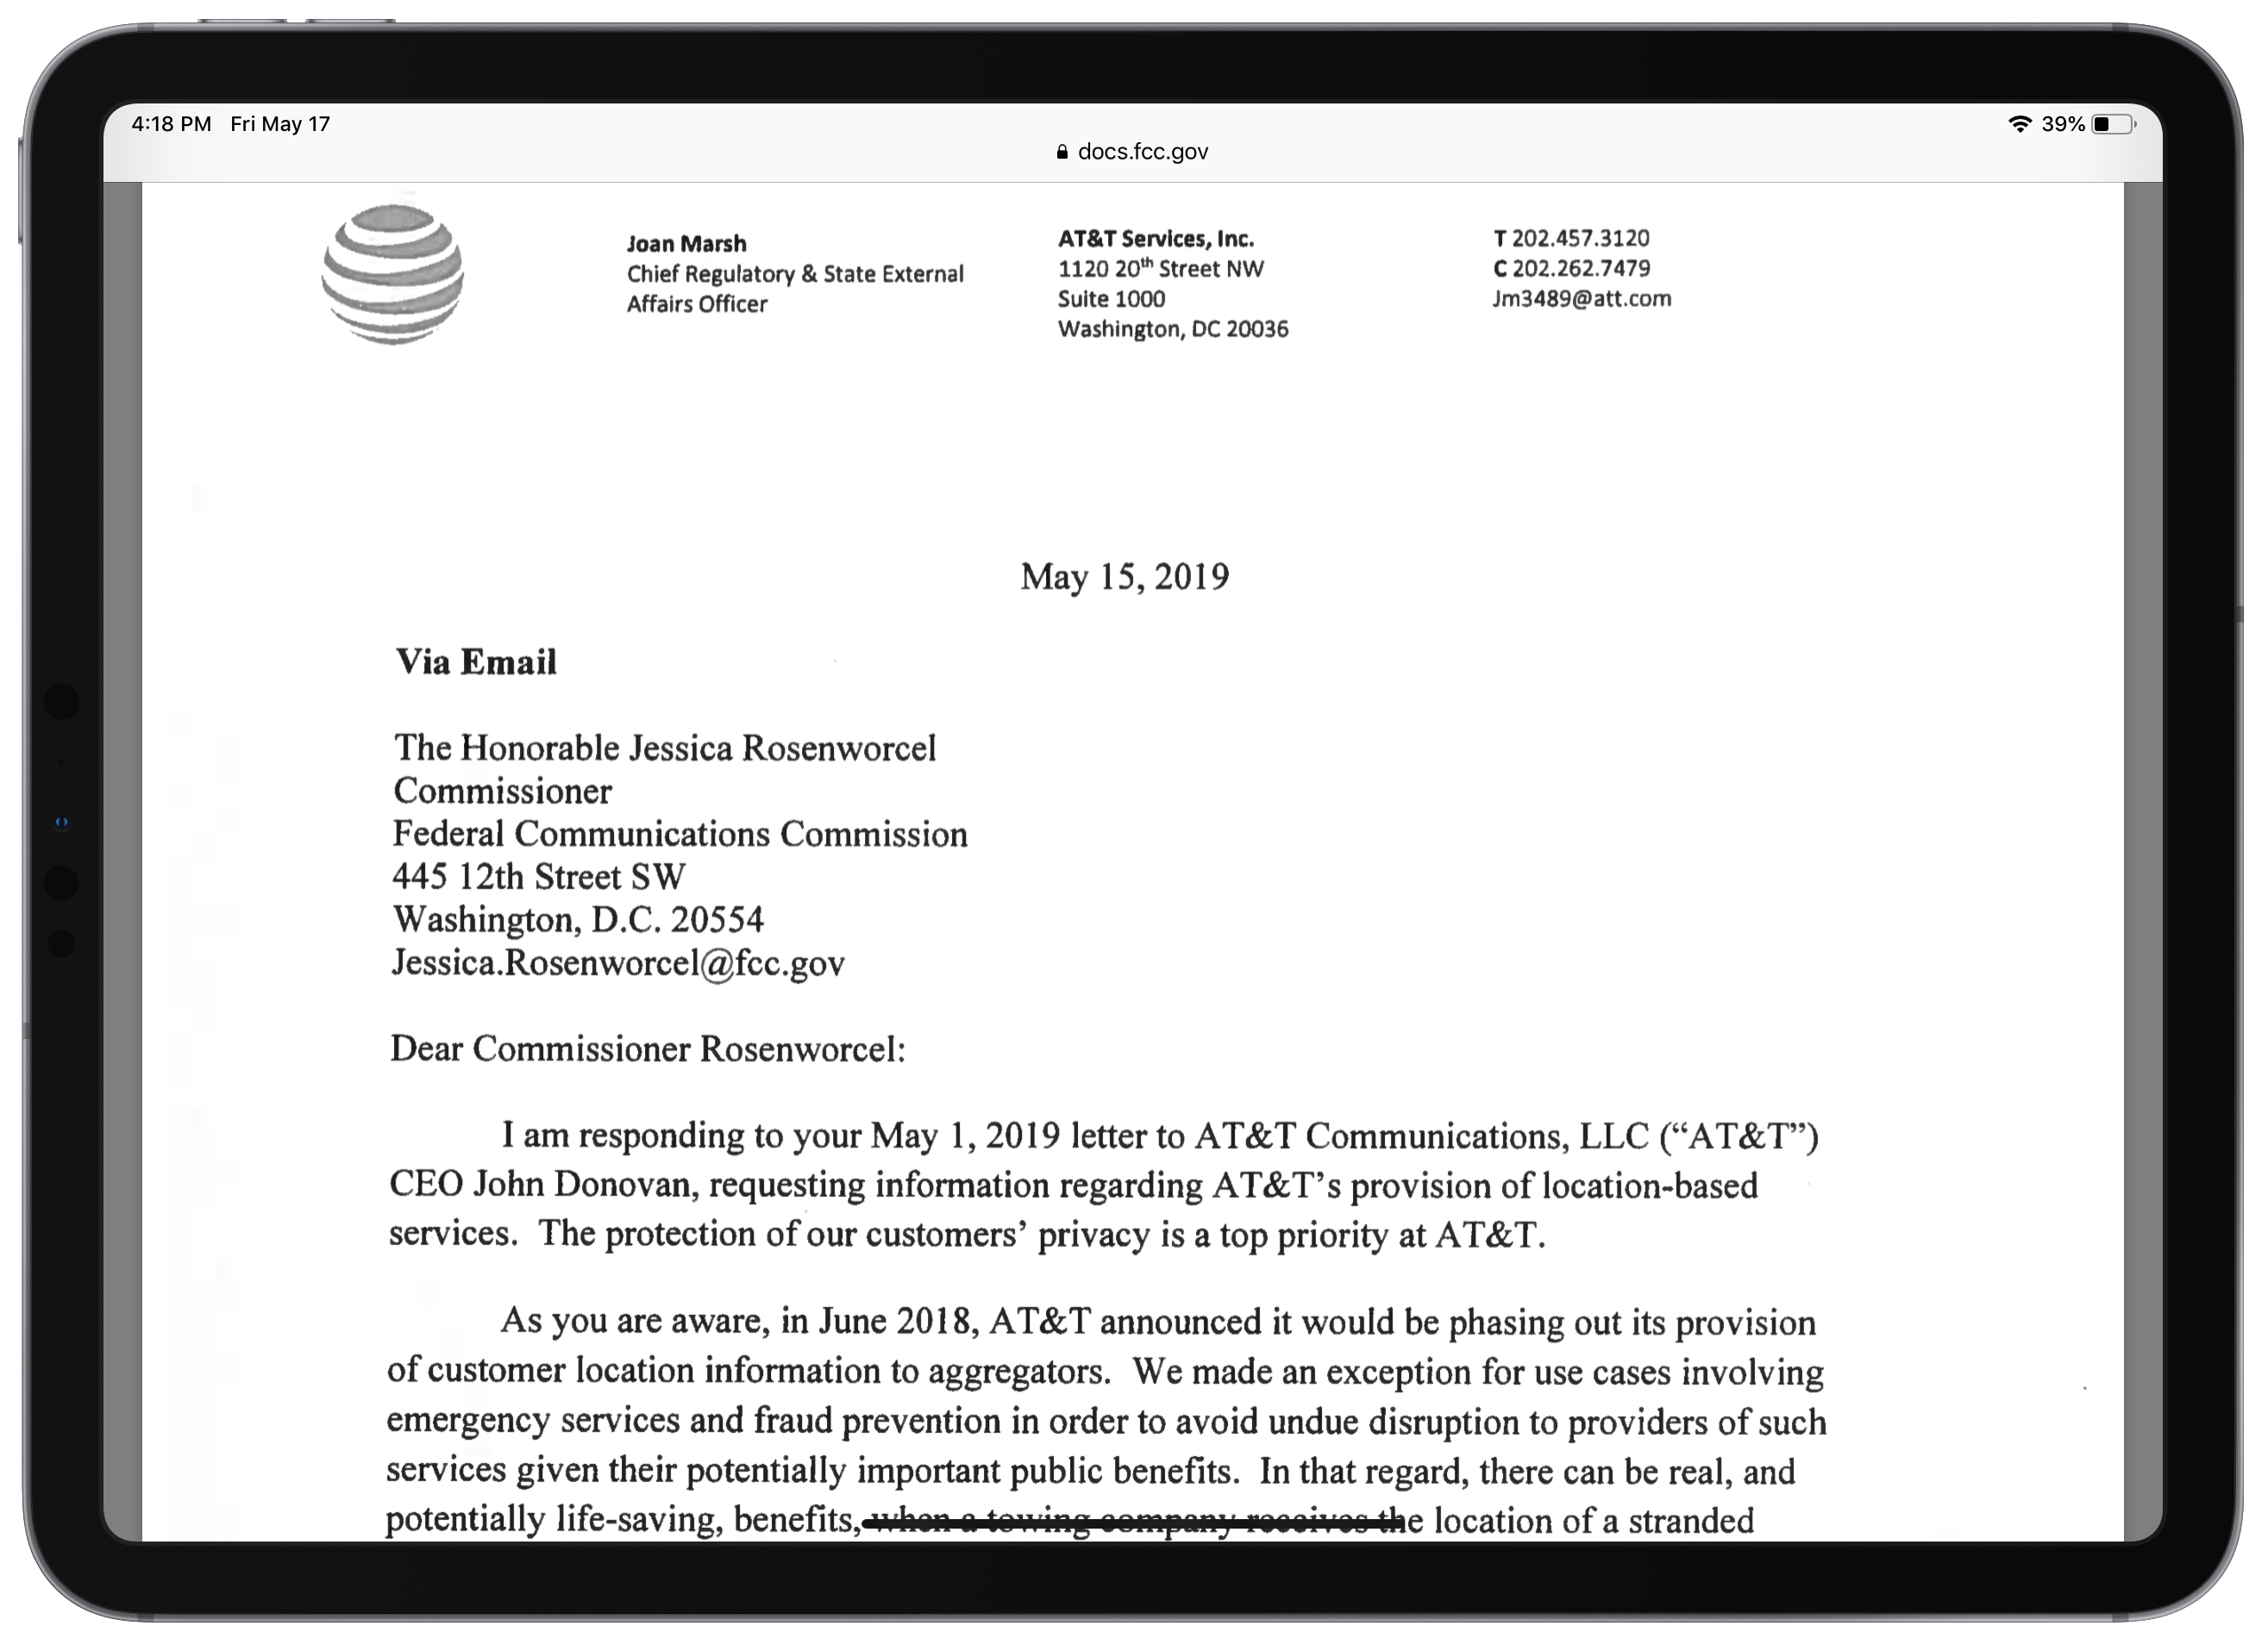 Carrier letters to FCC about selling location data